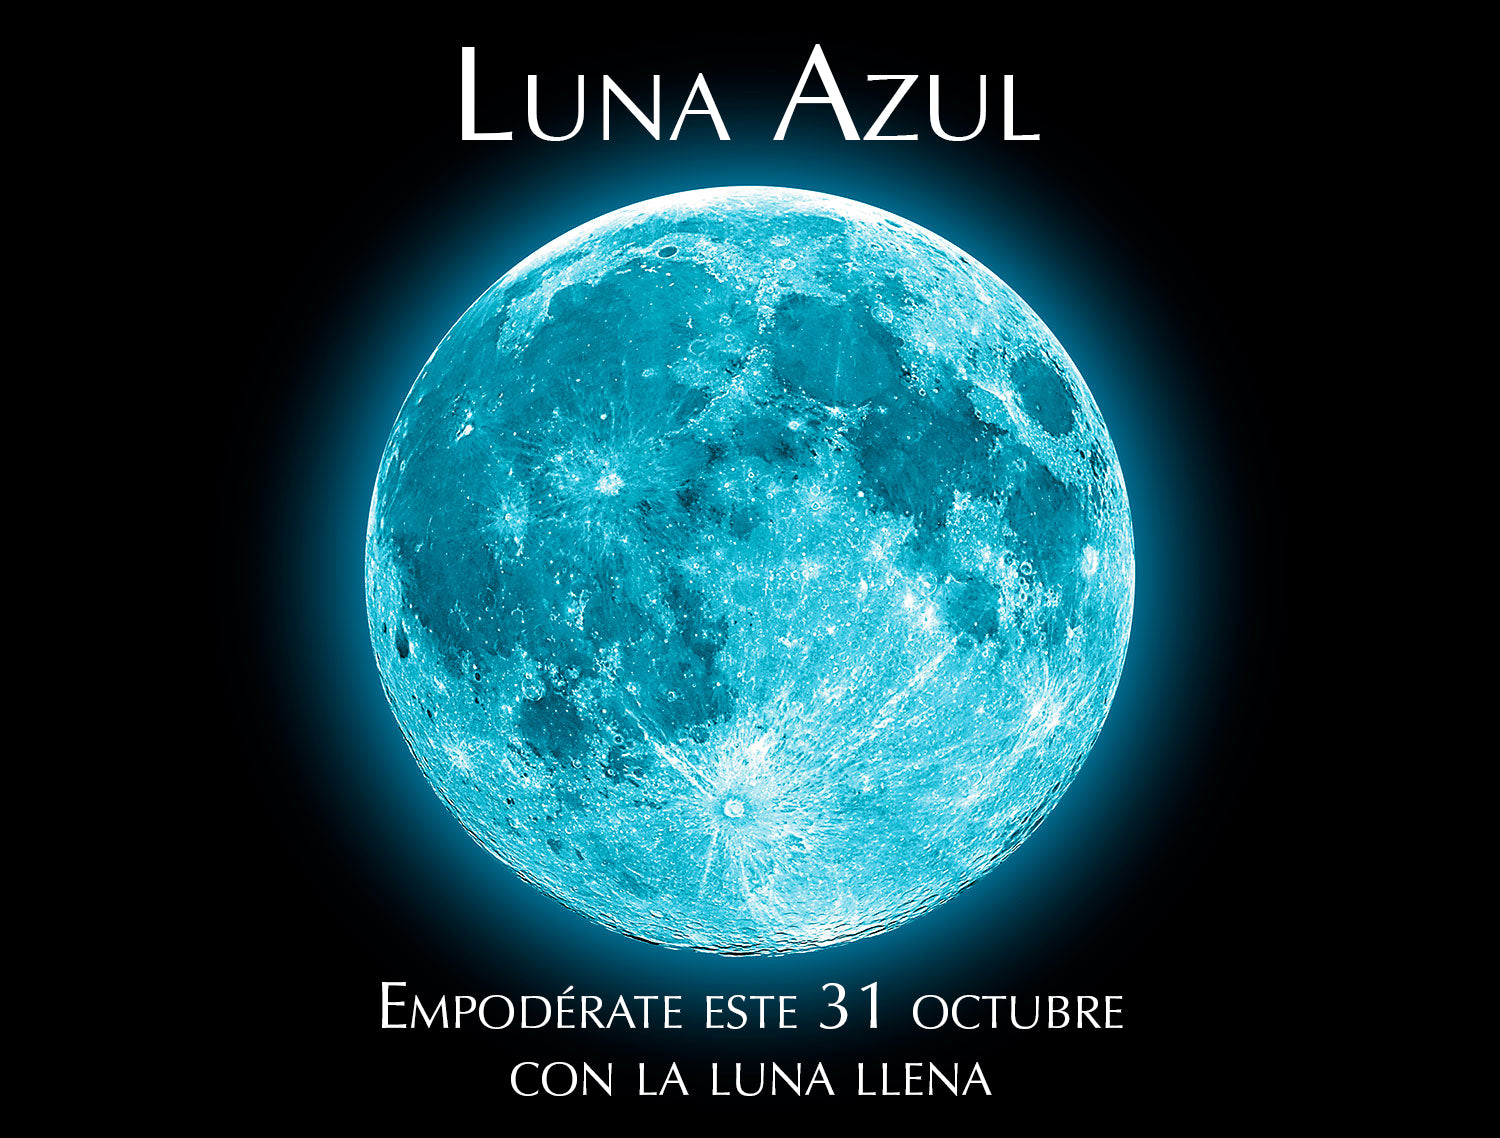 Empower yourself this October 31 with the full moon